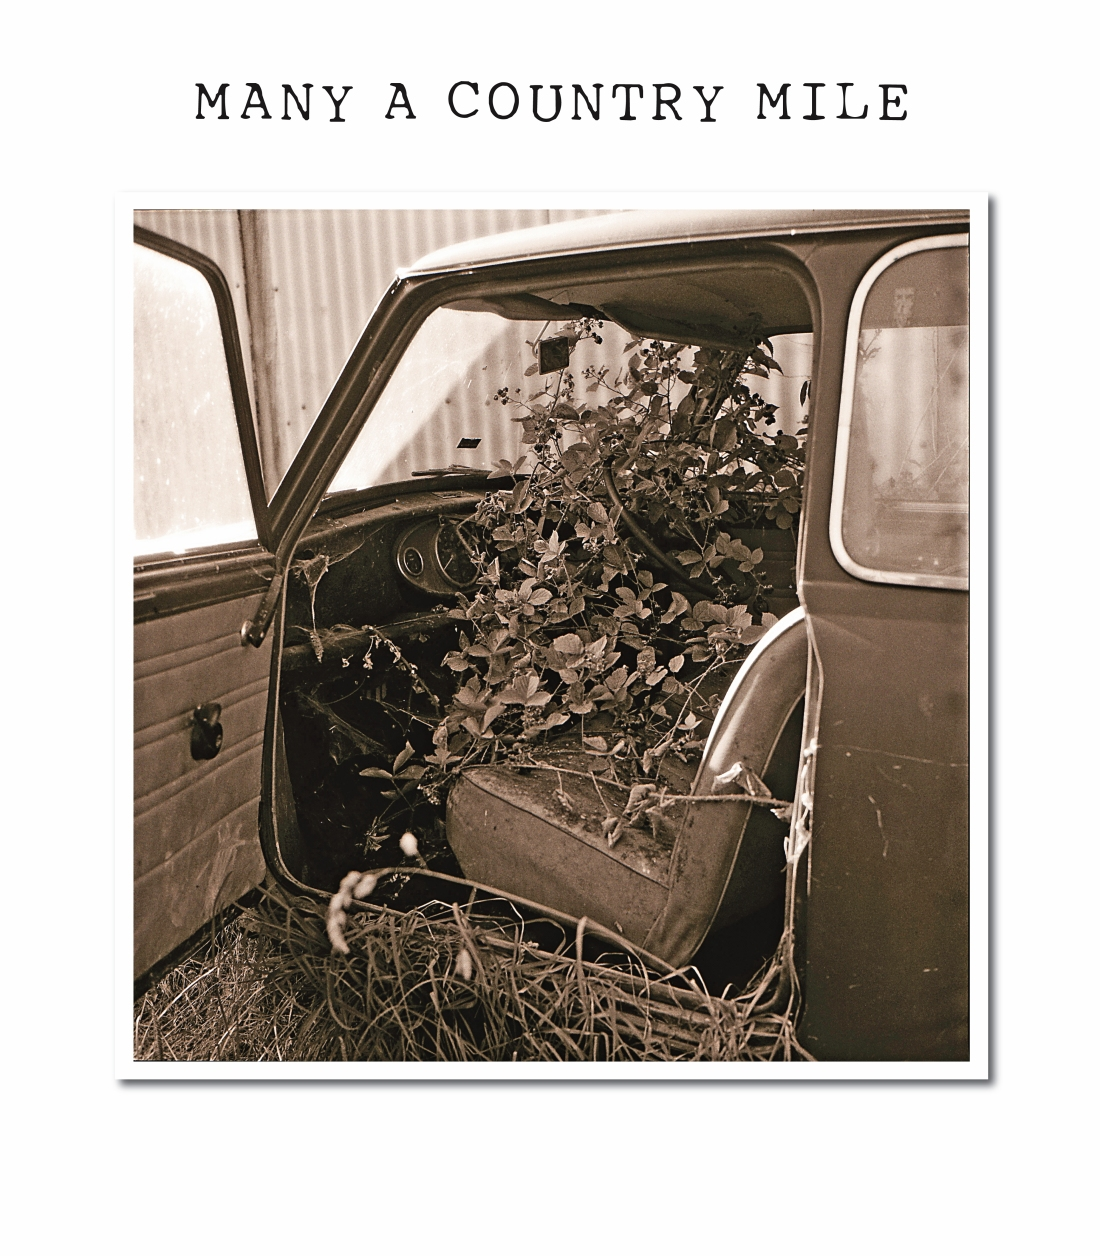 MANY A COUNTRY MILE - TITLE PAGE